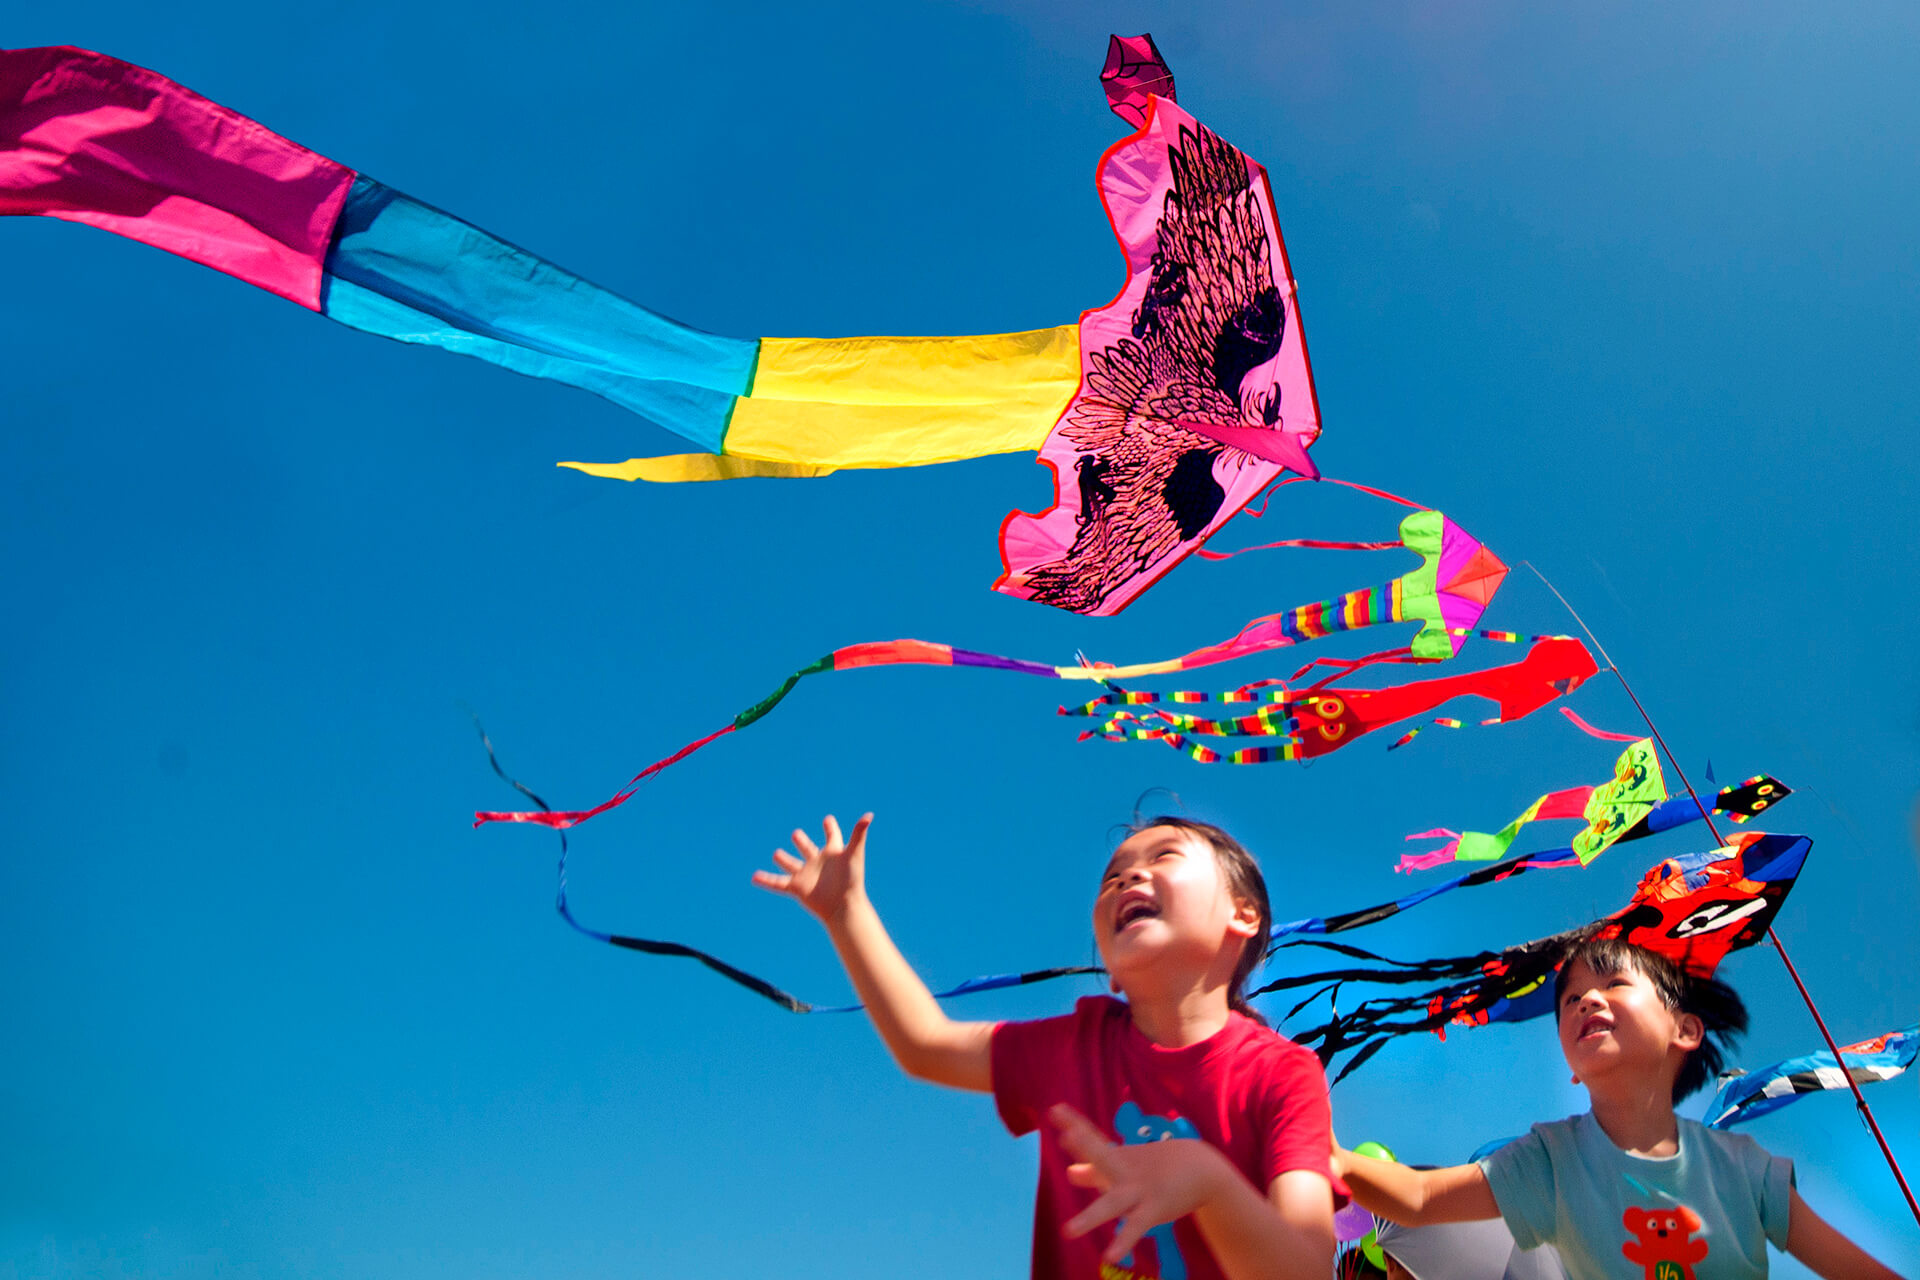 North Coast International Kite Festival